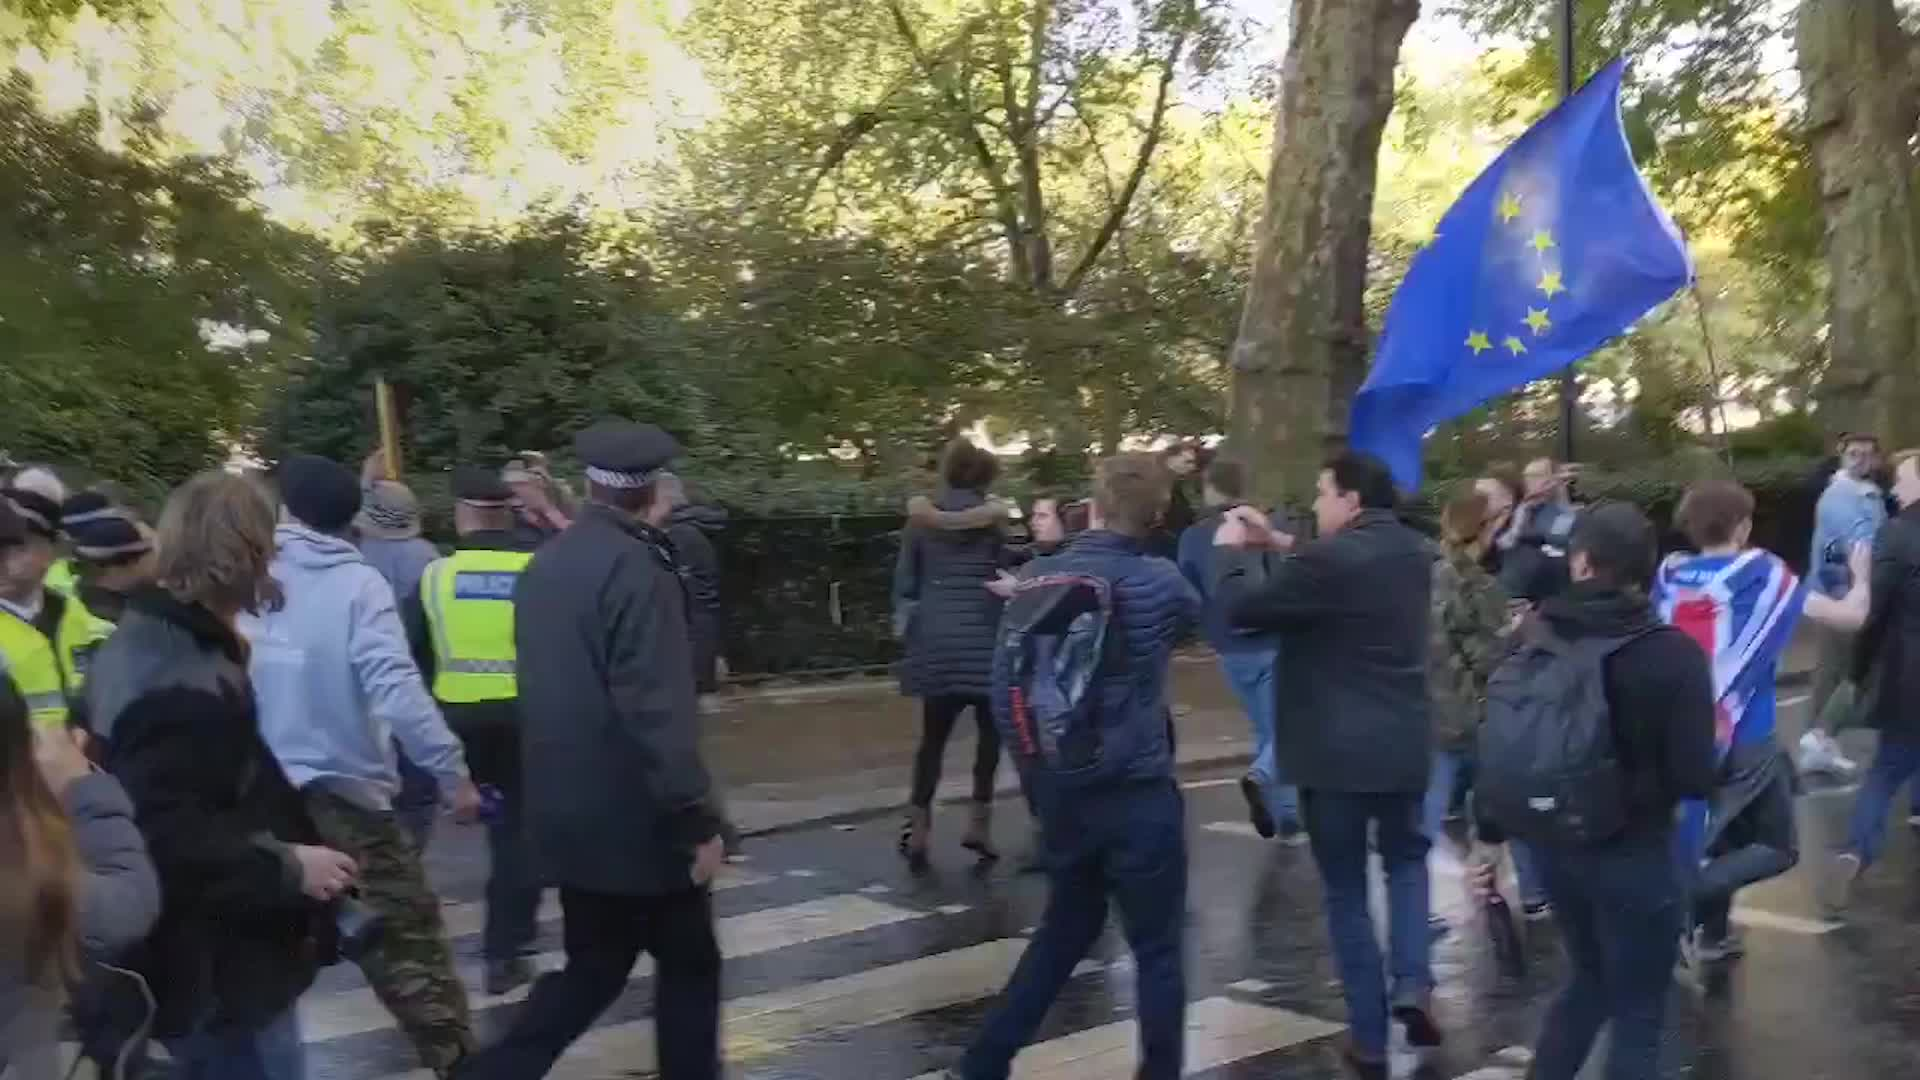 Jacob Rees-Mogg And Andrea Leadsom Had To Be Escorted By Police As They Left Westminster